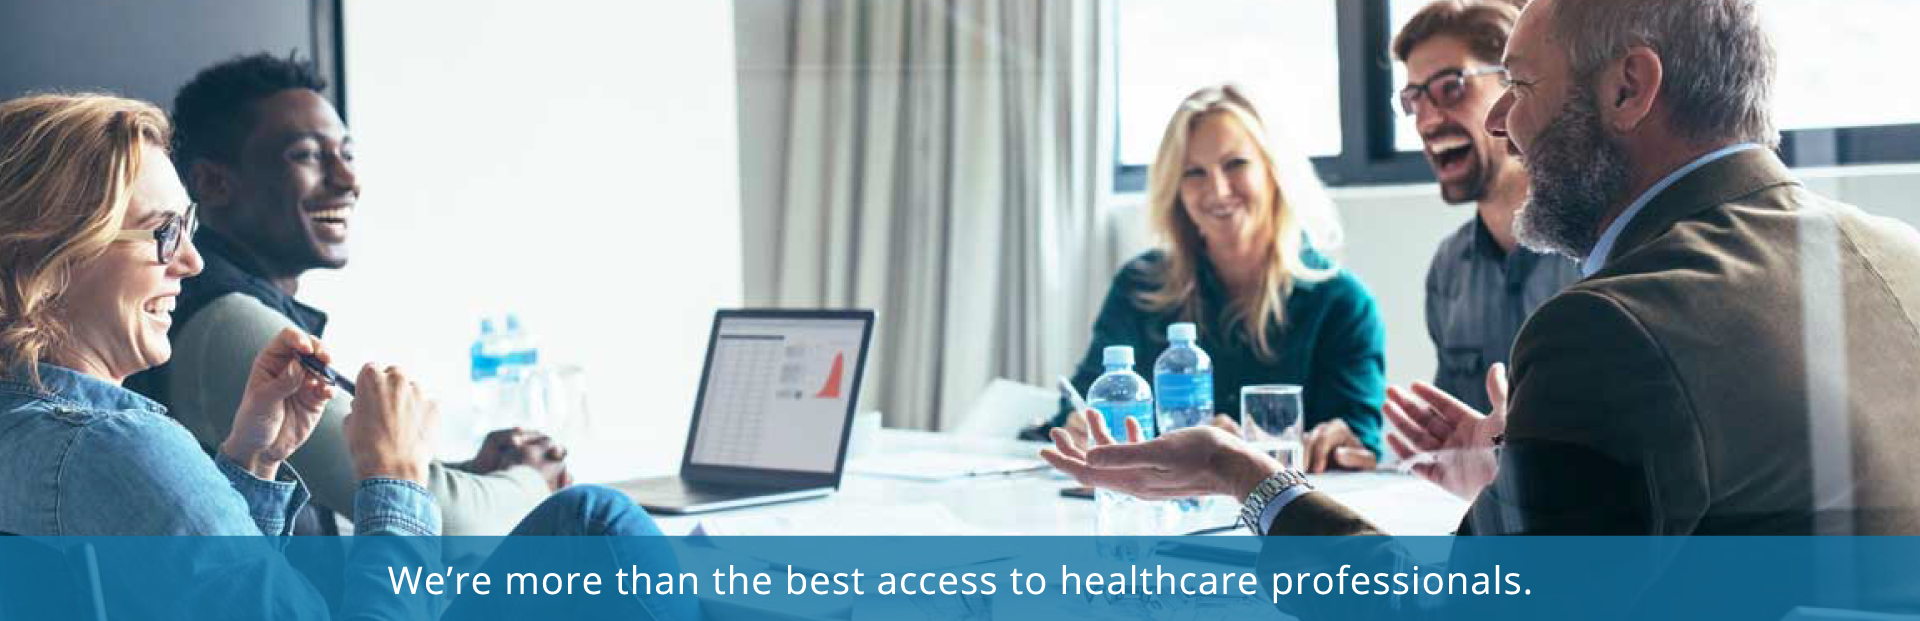 We're more than the best access to healthcare professionals